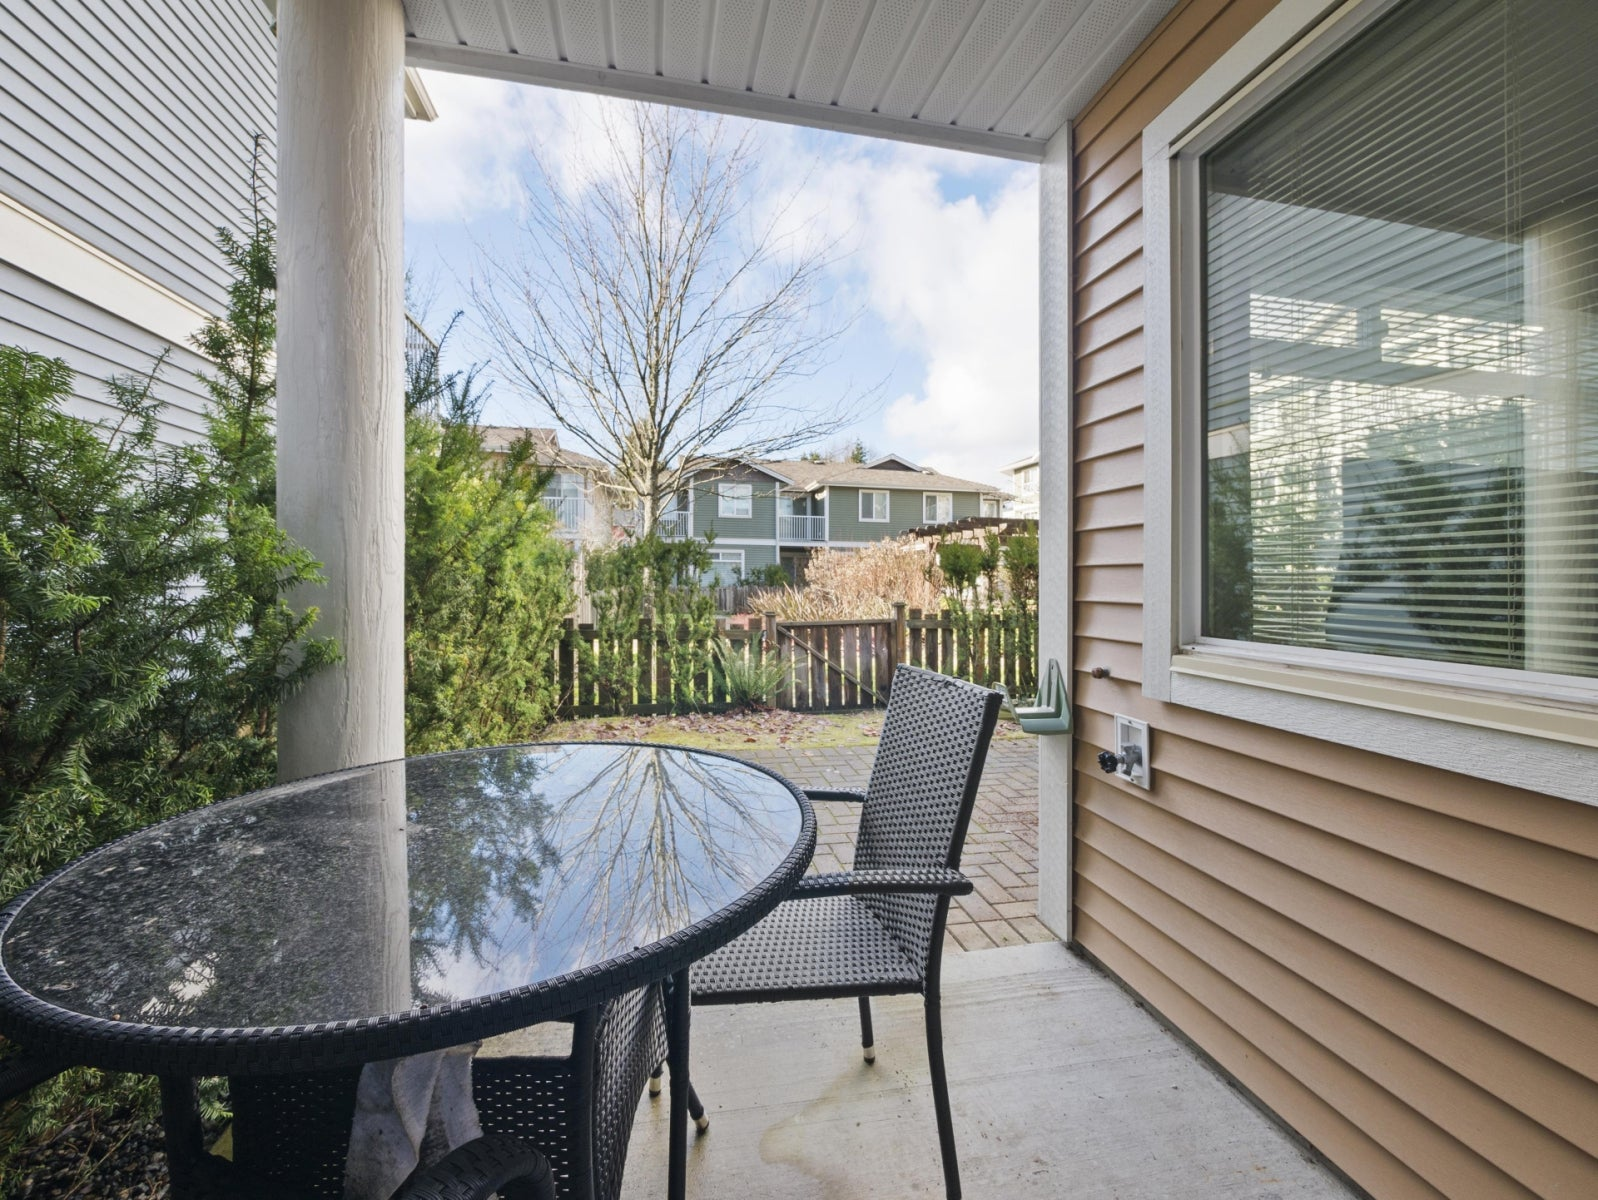 11 624 SHAW ROAD - Gibsons & Area Townhouse for sale, 3 Bedrooms (R2234910) #4